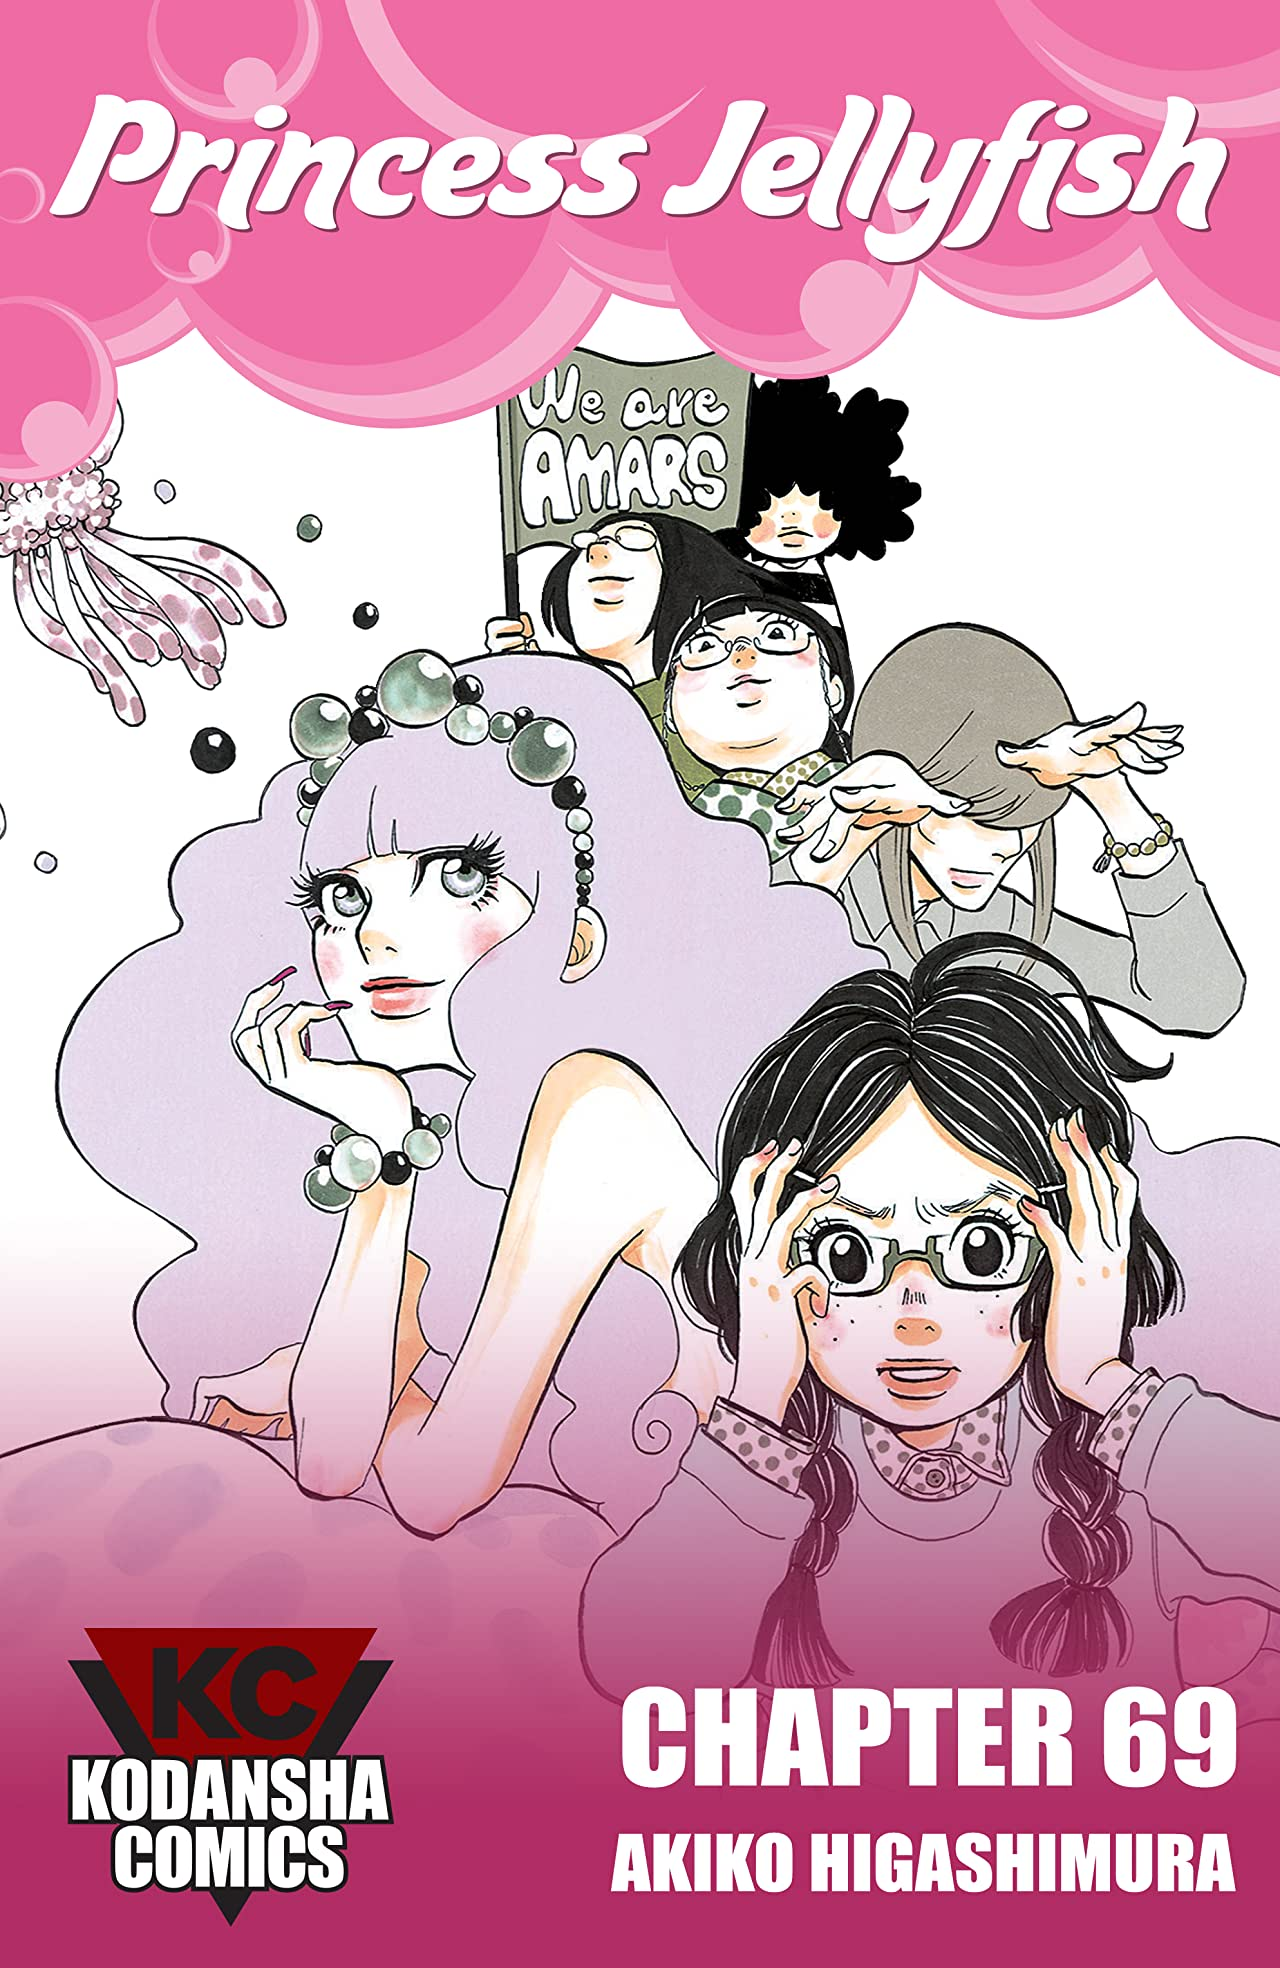 Princess Jellyfish #69